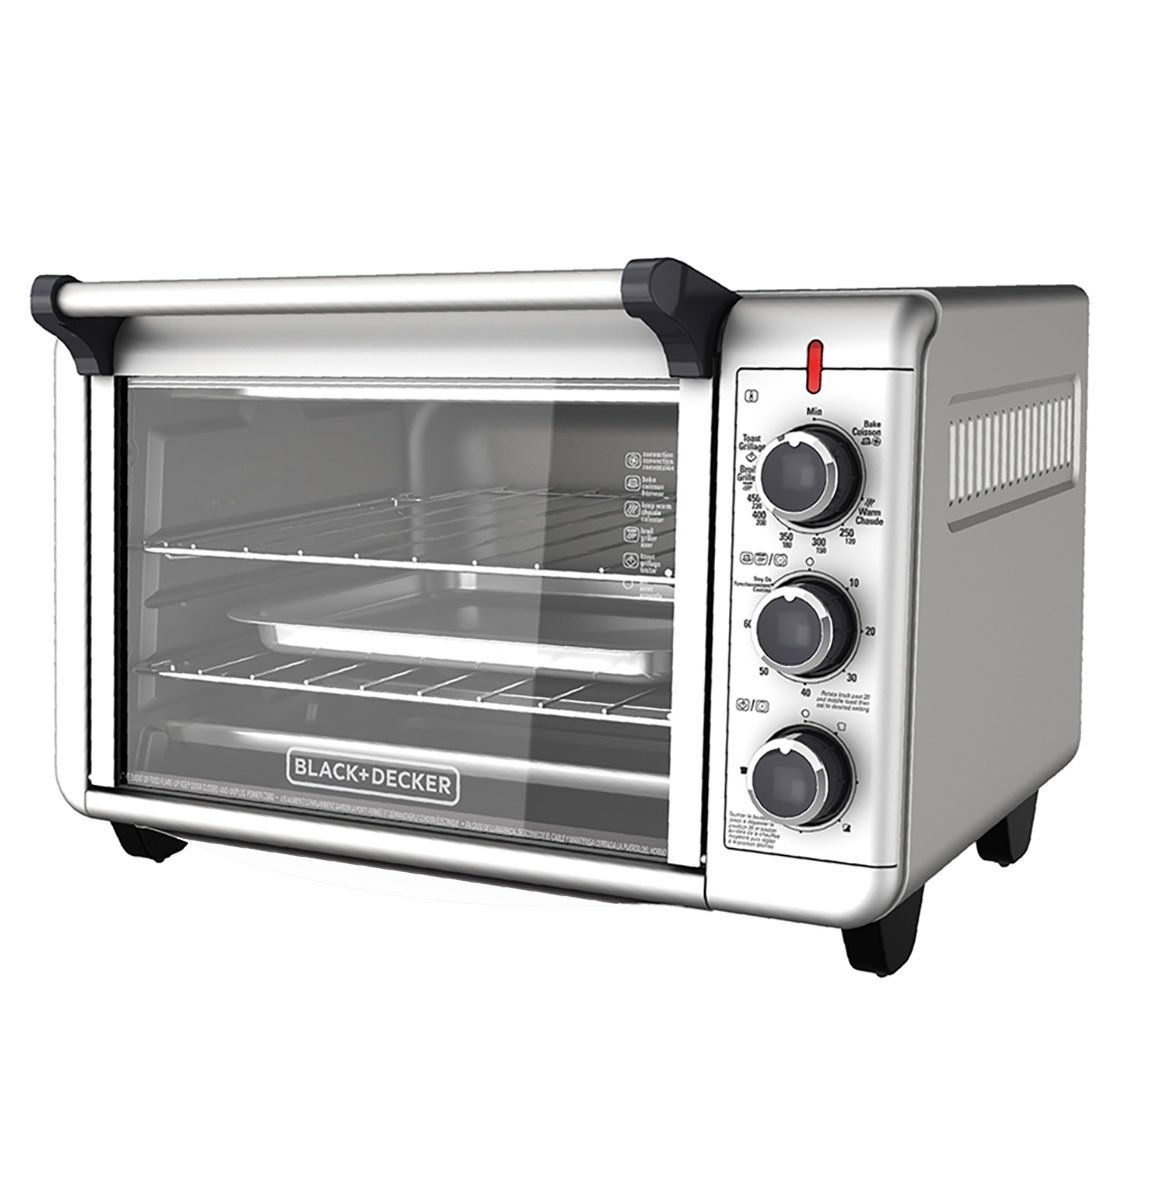 The 10 Best Toaster Ovens According To Customer Reviews Convection Toaster Oven Countertop Oven Countertop Toaster Oven